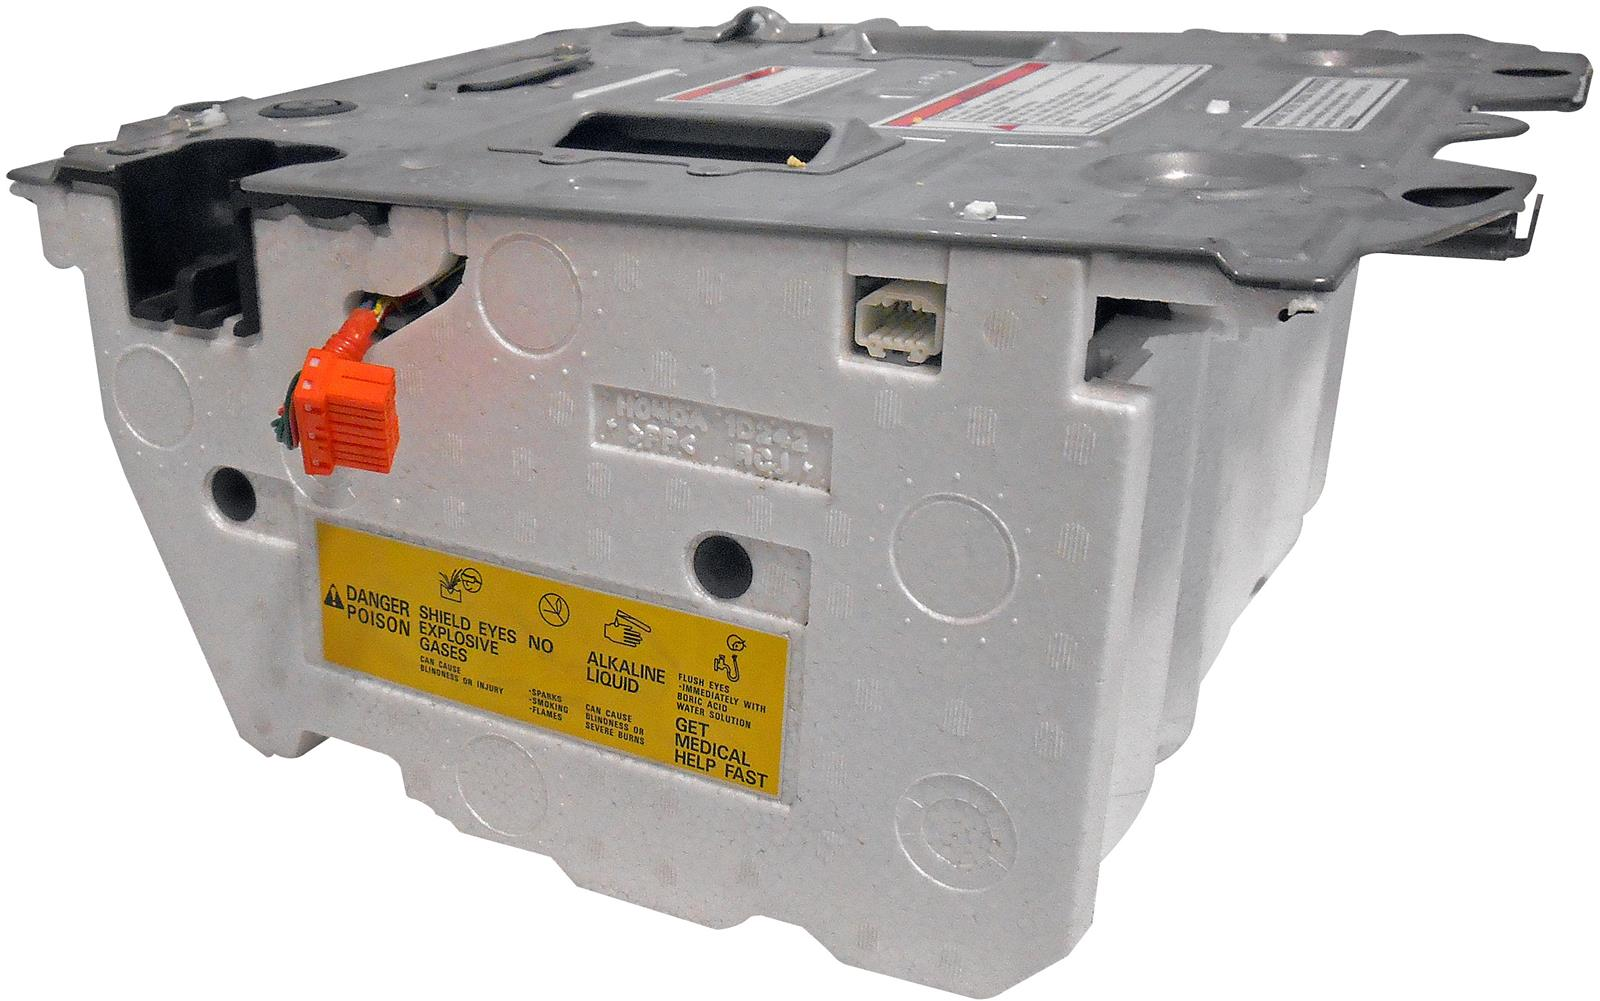 Dorman Hybrid Battery Packs 587 006 Free Shipping On Orders Over 99 At Summit Racing